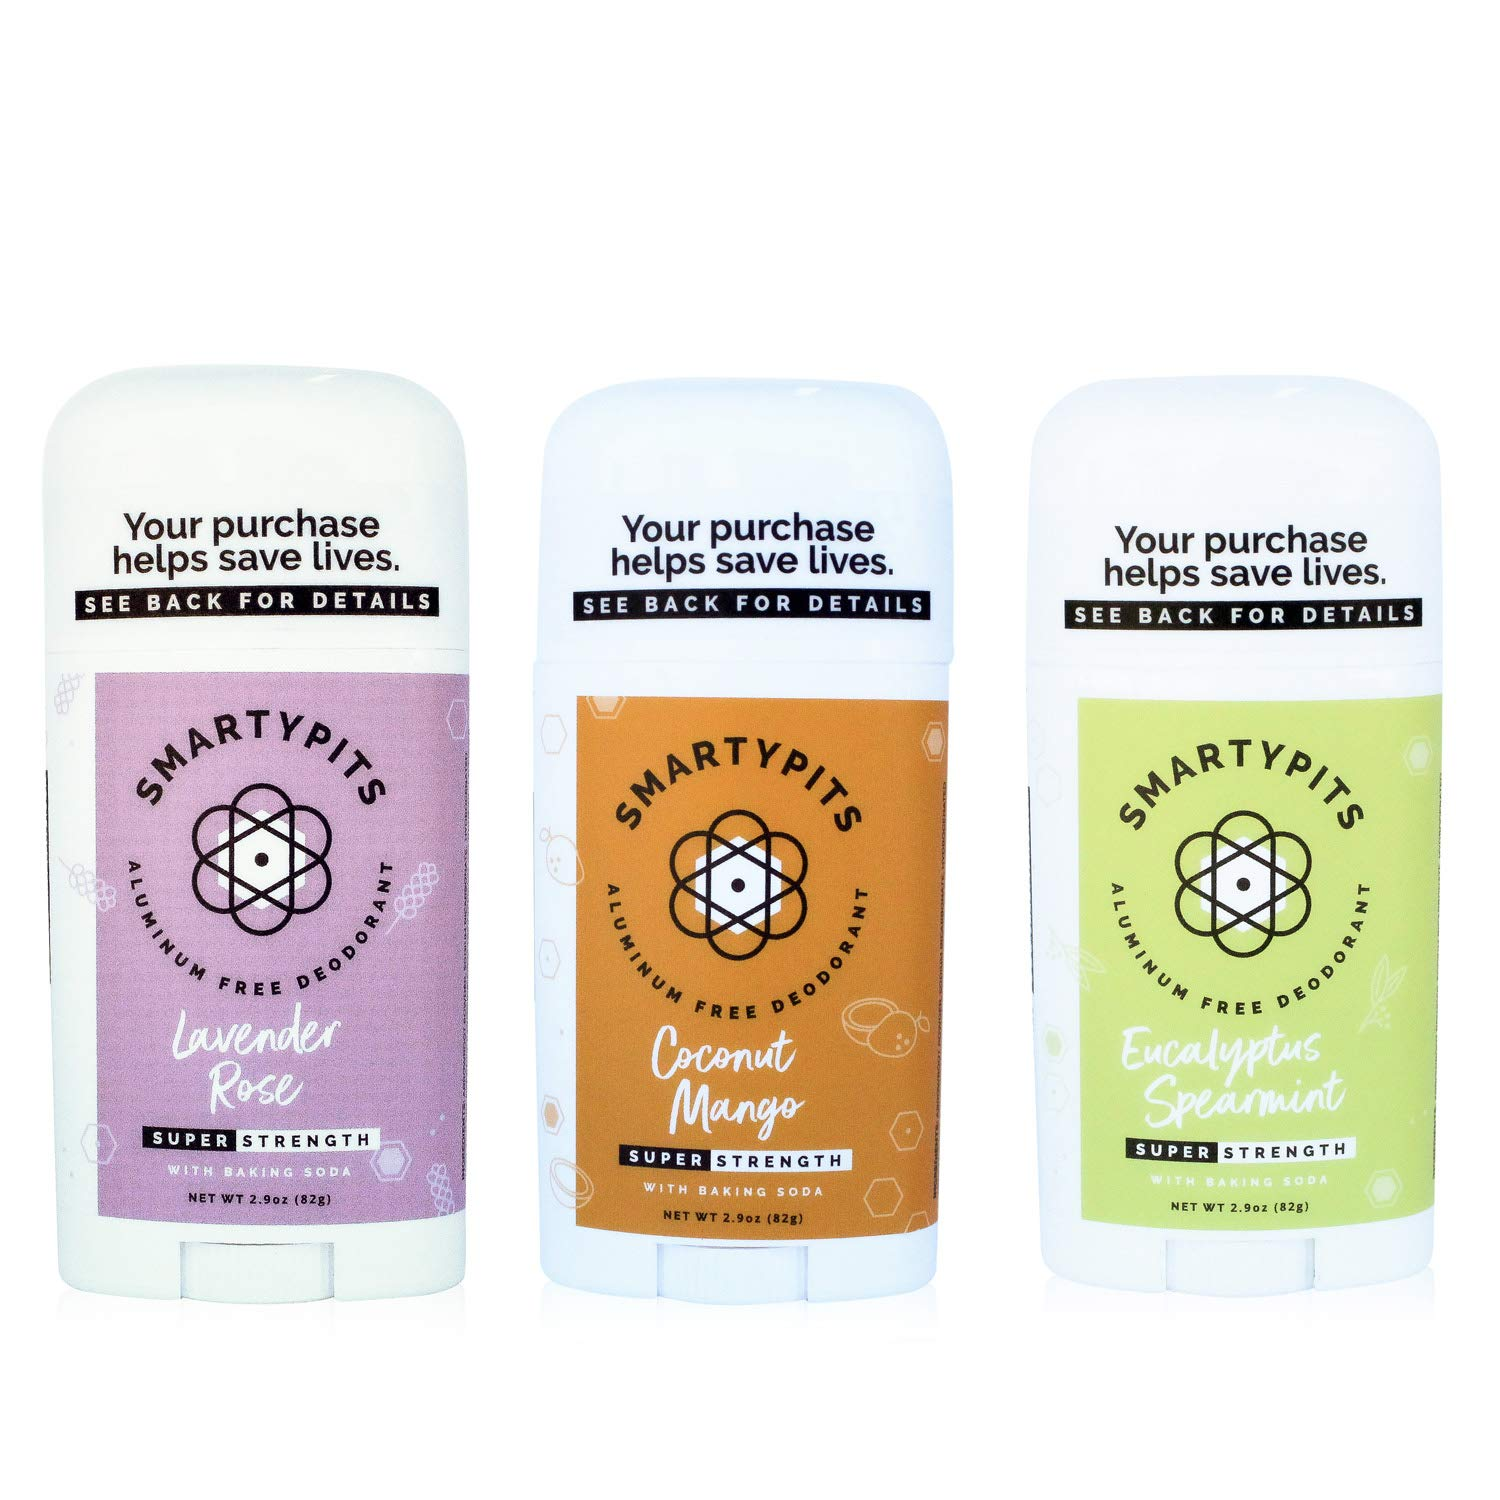 3 Pack Natural Aluminum-Free Max 66% OFF OFFicial site Deodorant baking Parabe soda with